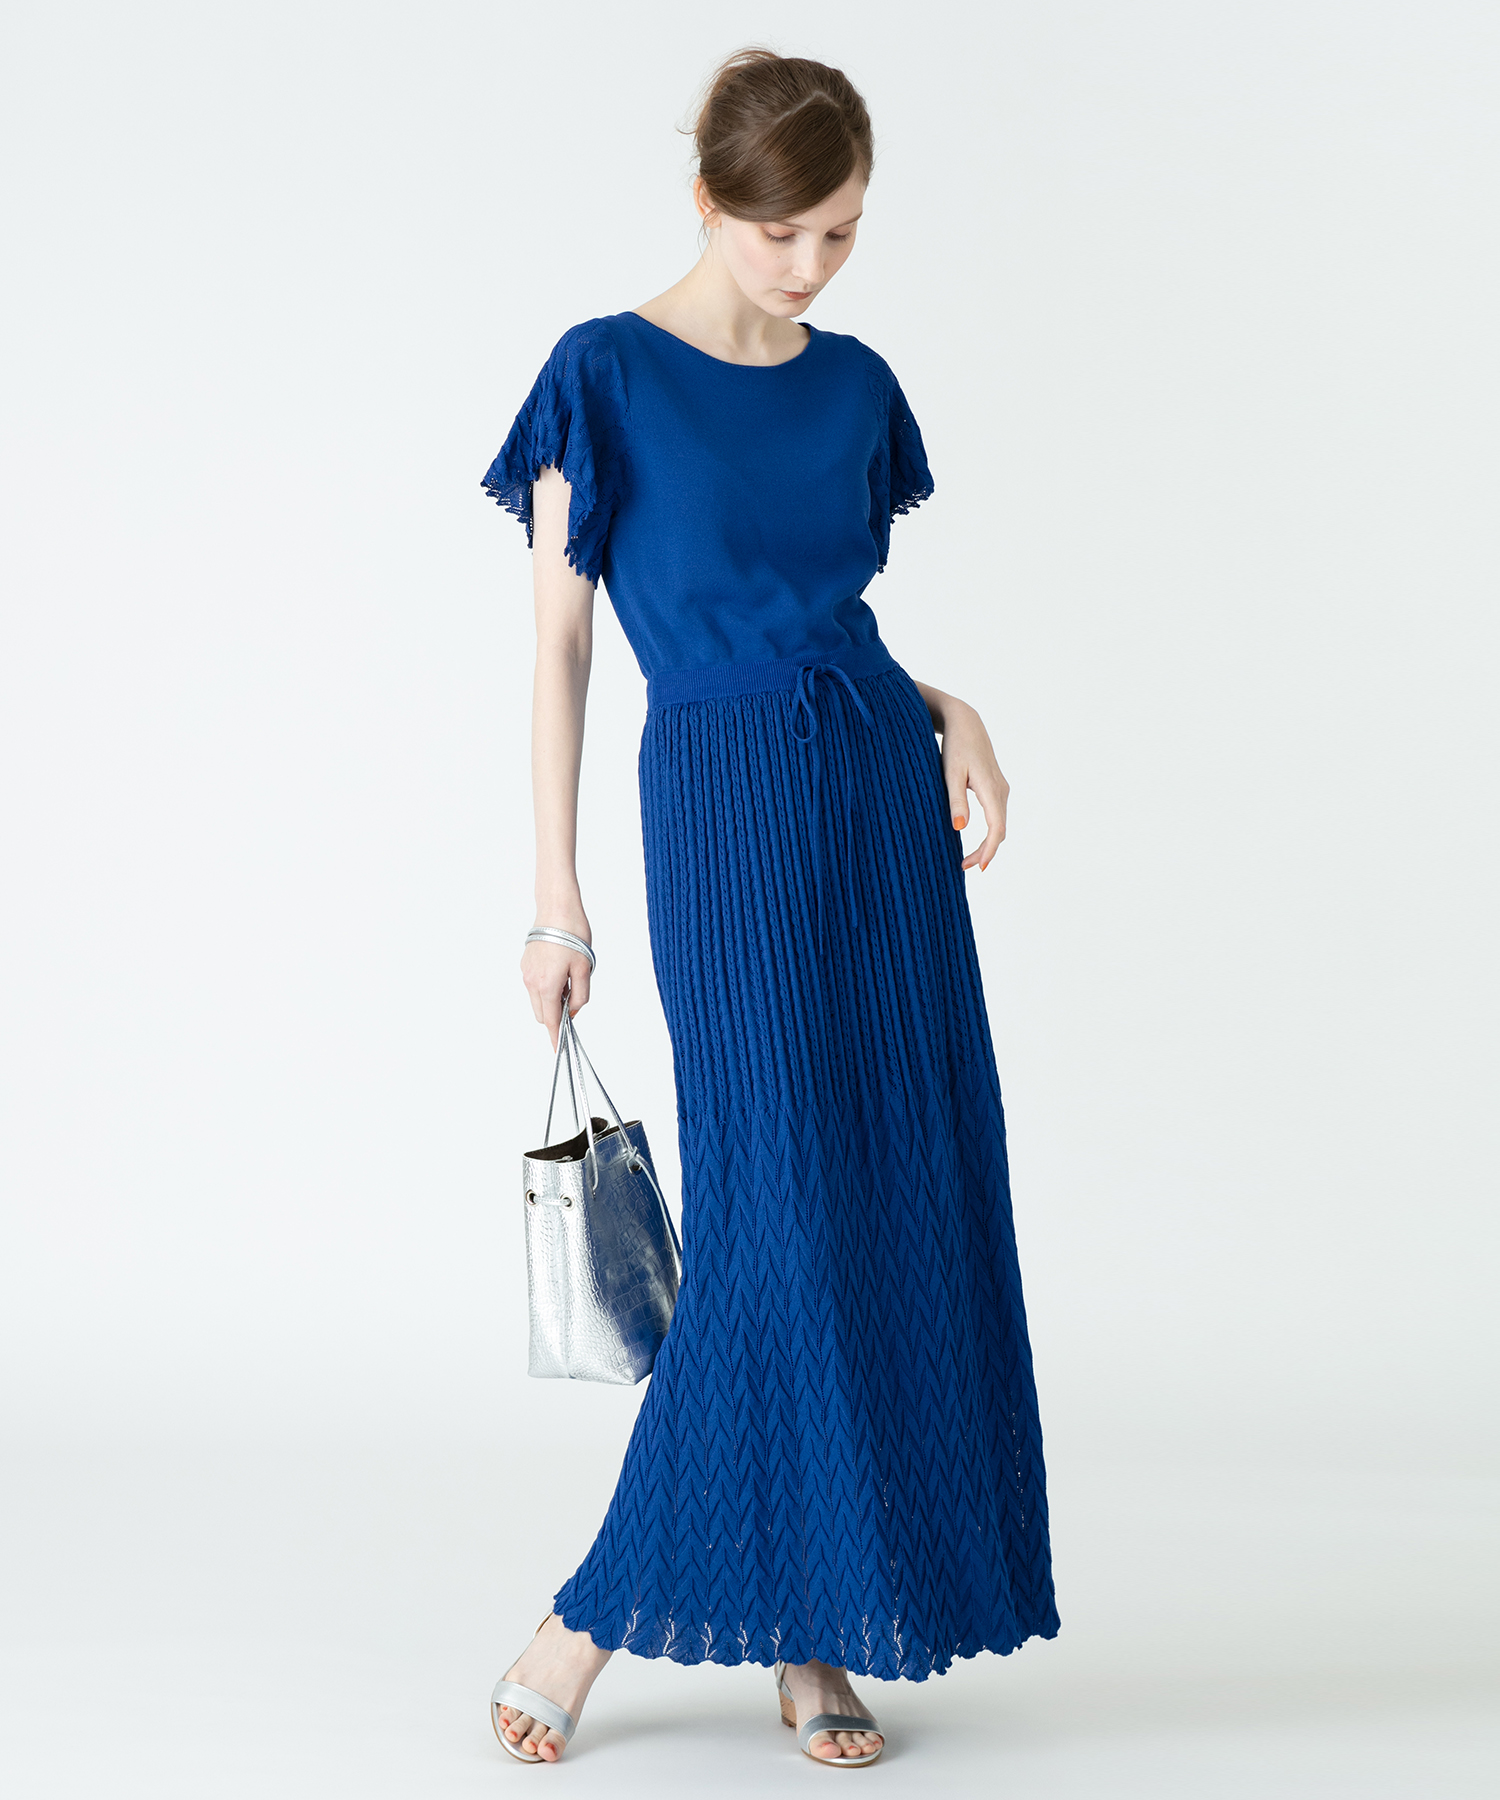 【LOULOU WILLOUGHBY】レーシィニットワンピース